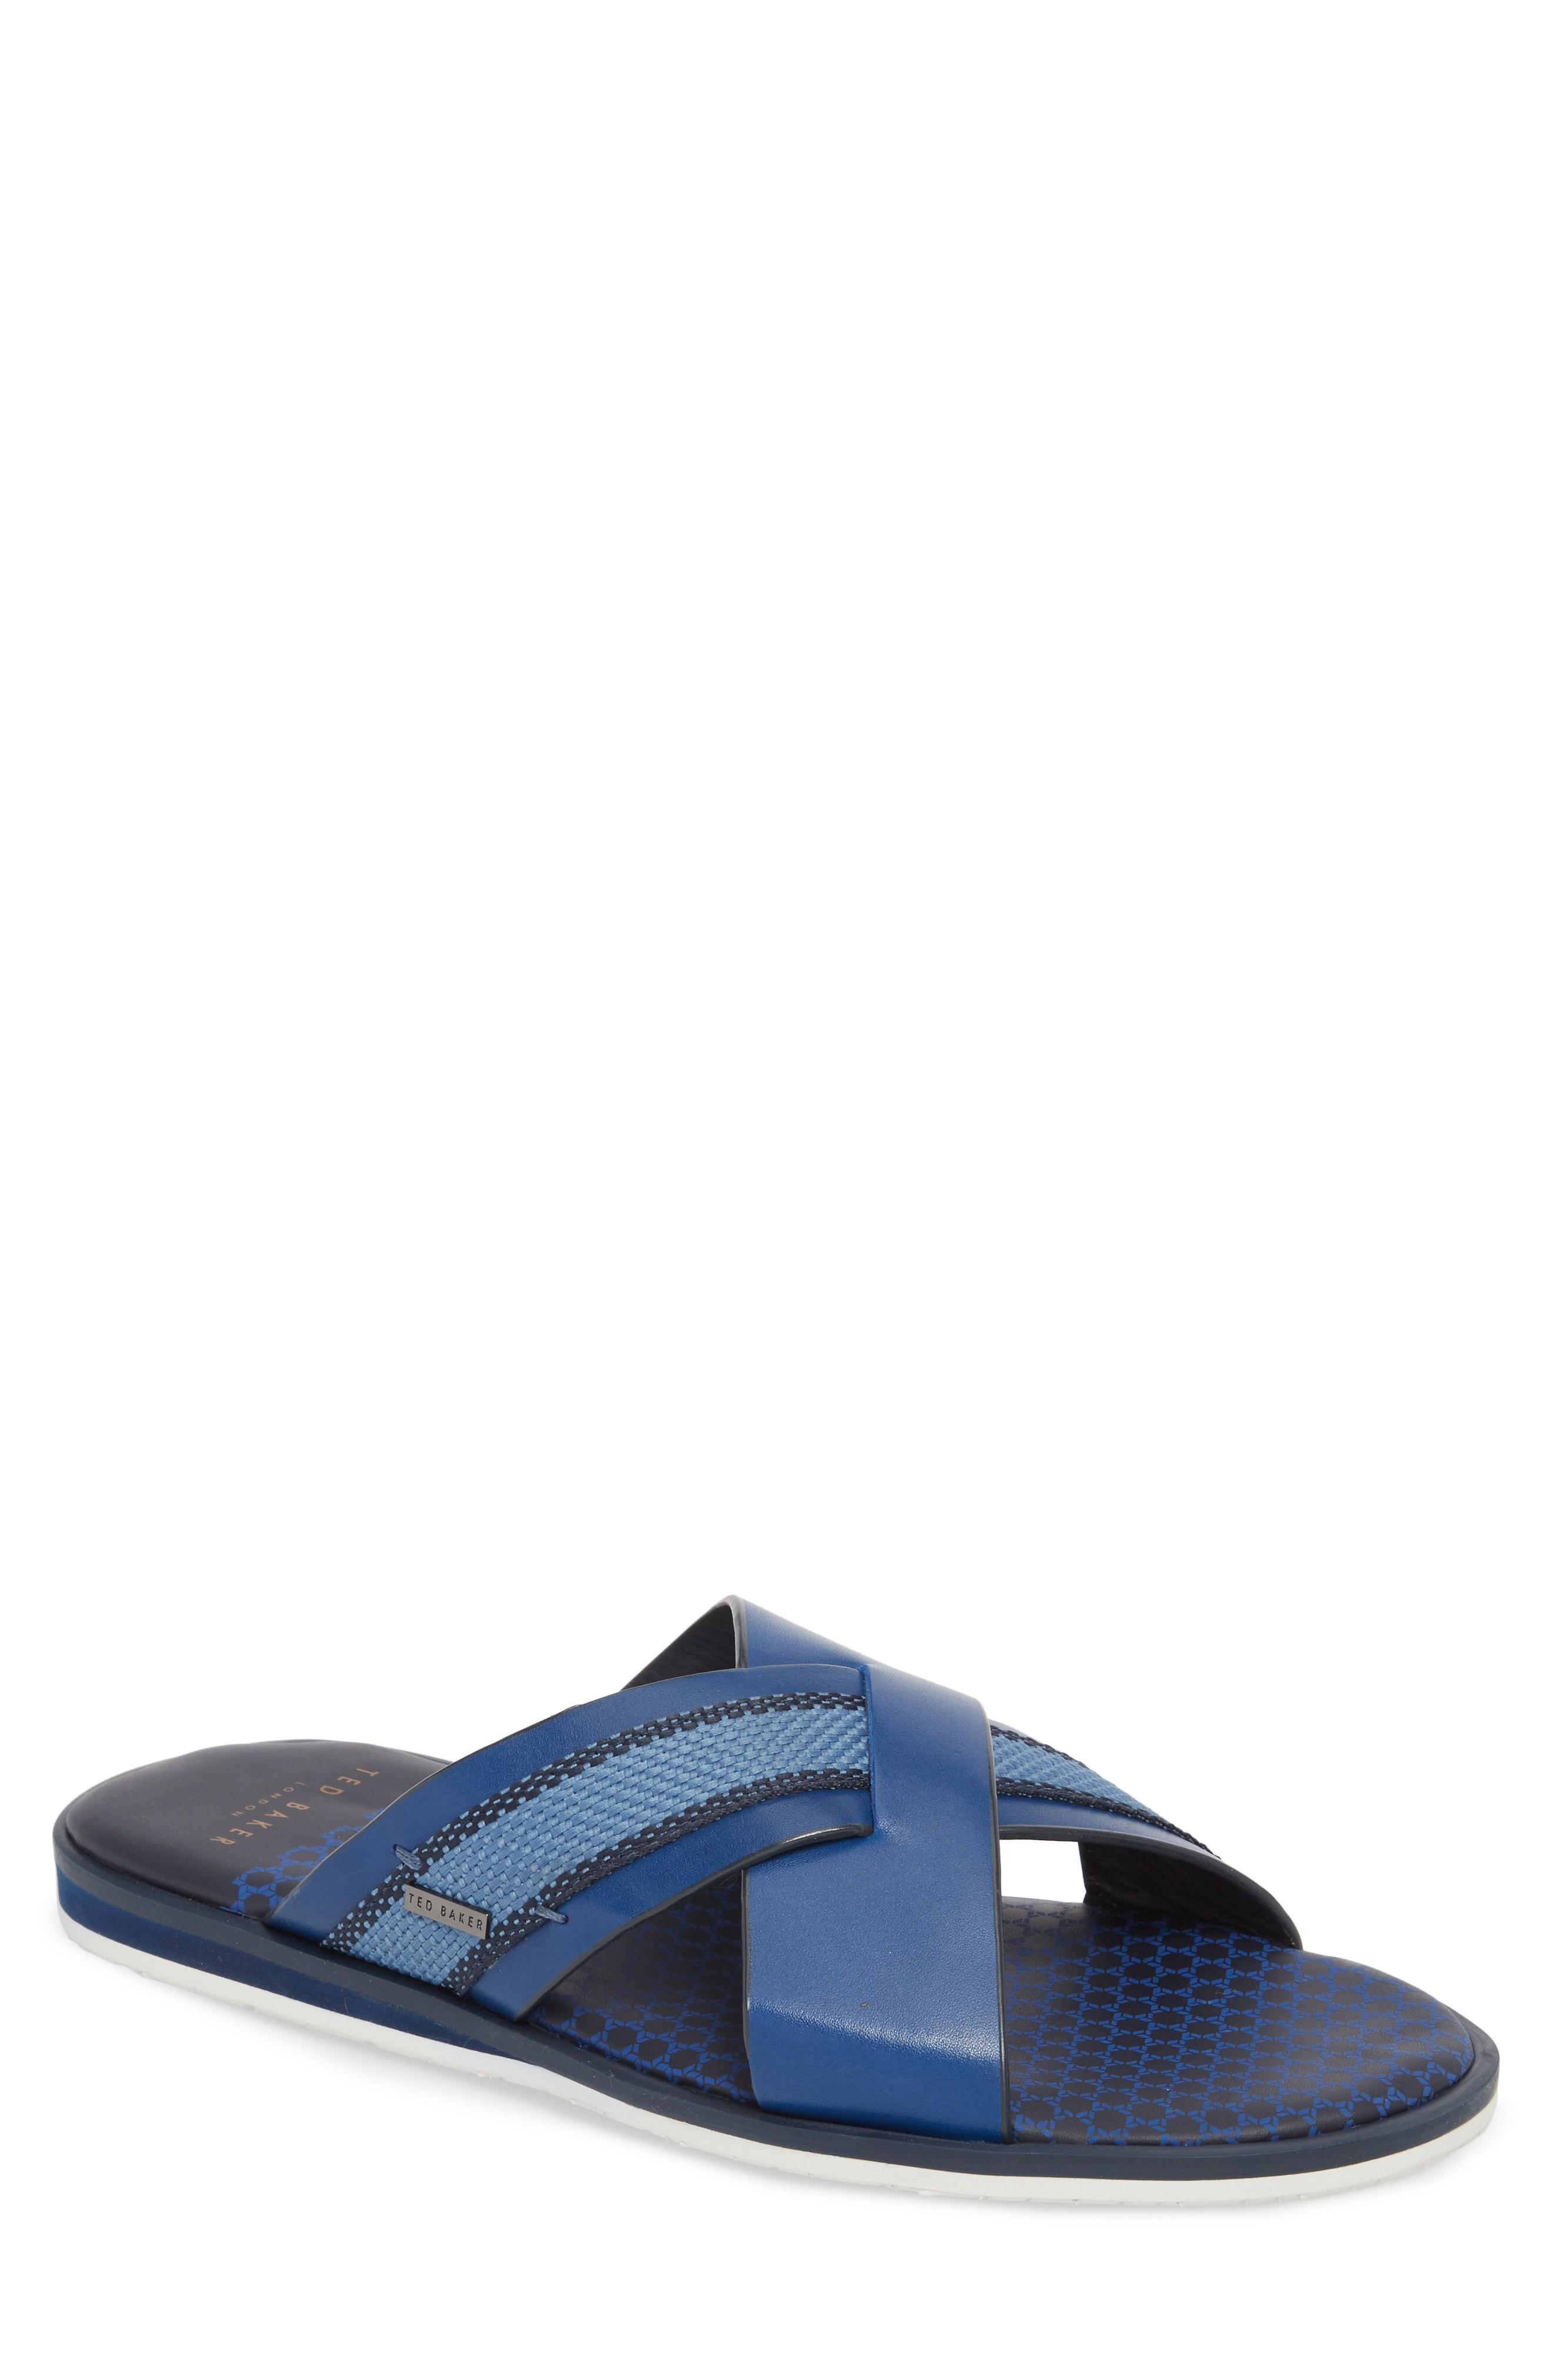 Ted Baker Farrull Cross Strap Slide Sandal In Blue Leather/textile